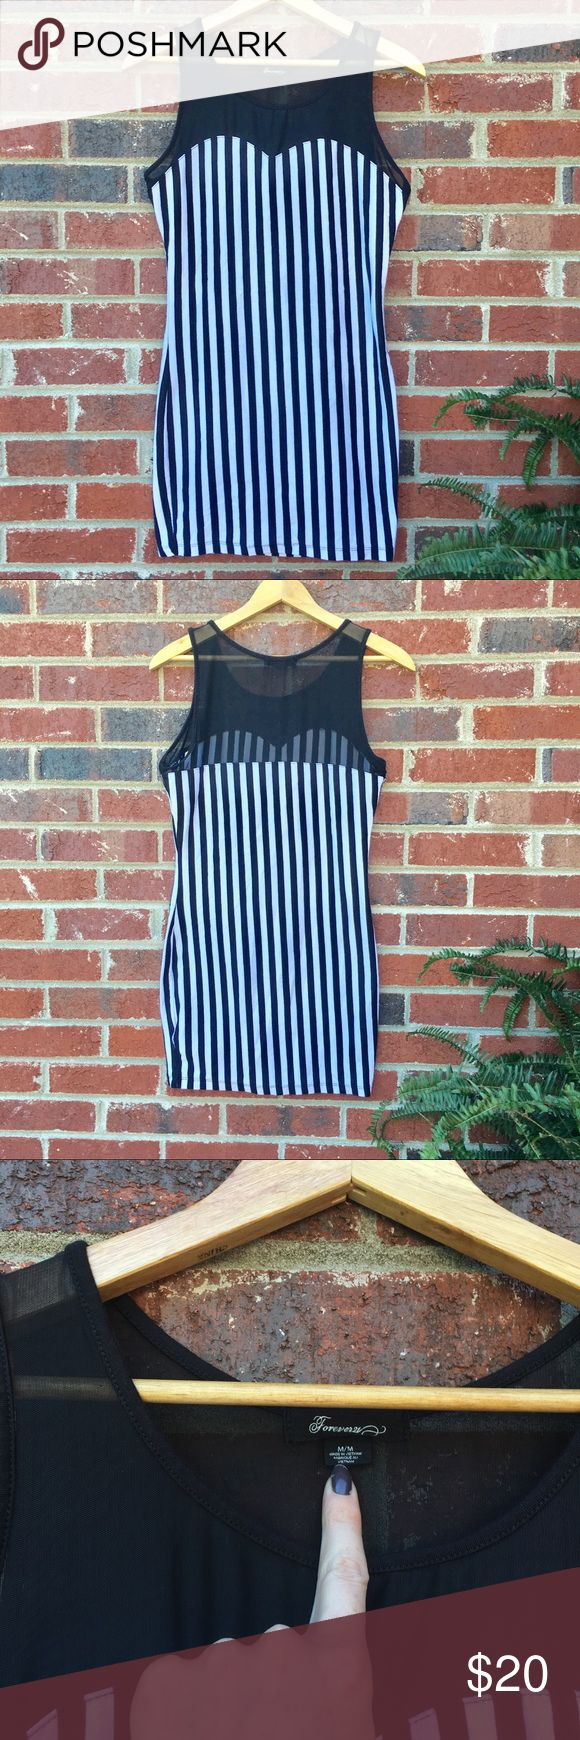 Striped Bodycon Dress Excellent condition, worn once. Black and white stripes. Listed as size medium but definitely fits a small! Soft t-shirt material. Stretchy and very flattering! Mesh top. No zippers, easy to dress in! Forever 21 Dresses Mini